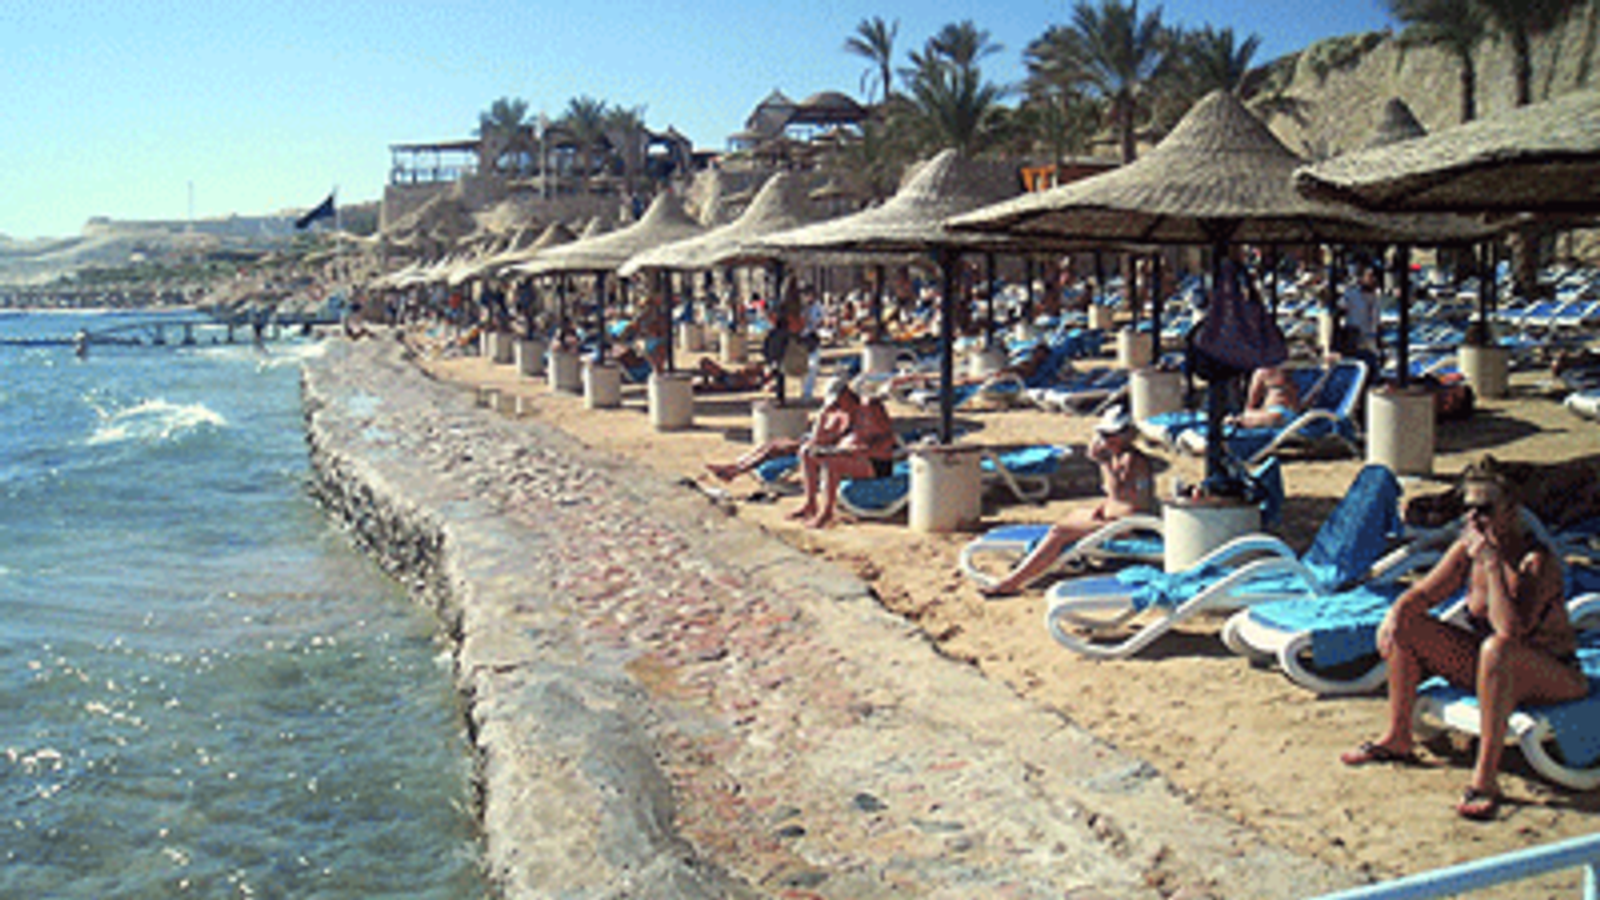 Tourists at a beach with a swimming ban at the Red Sea resort of Sharm el-Sheikh, December 2, 2010.